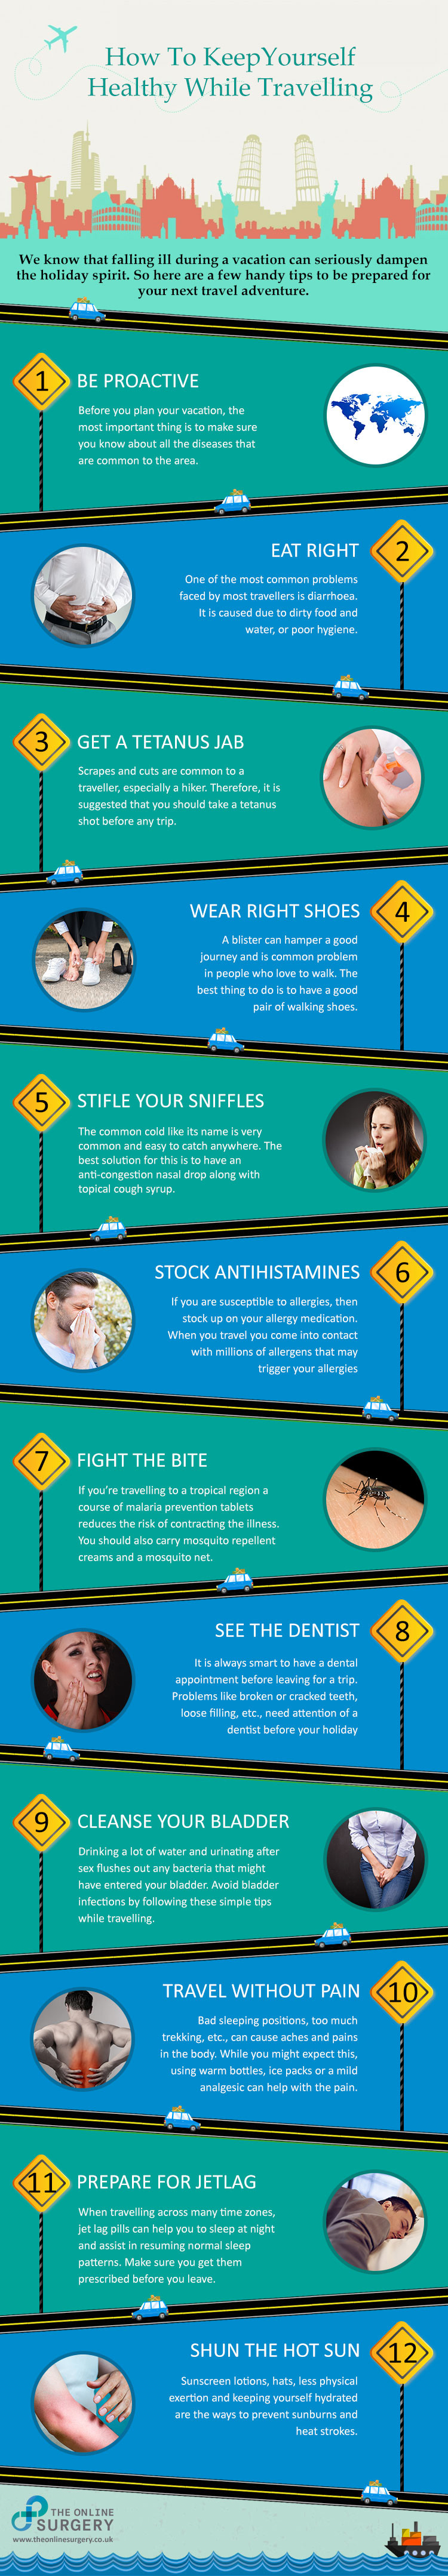 Stay-Healthy-While-Traveling-Infographic-First-Aid-Kit-Travel-Wellness